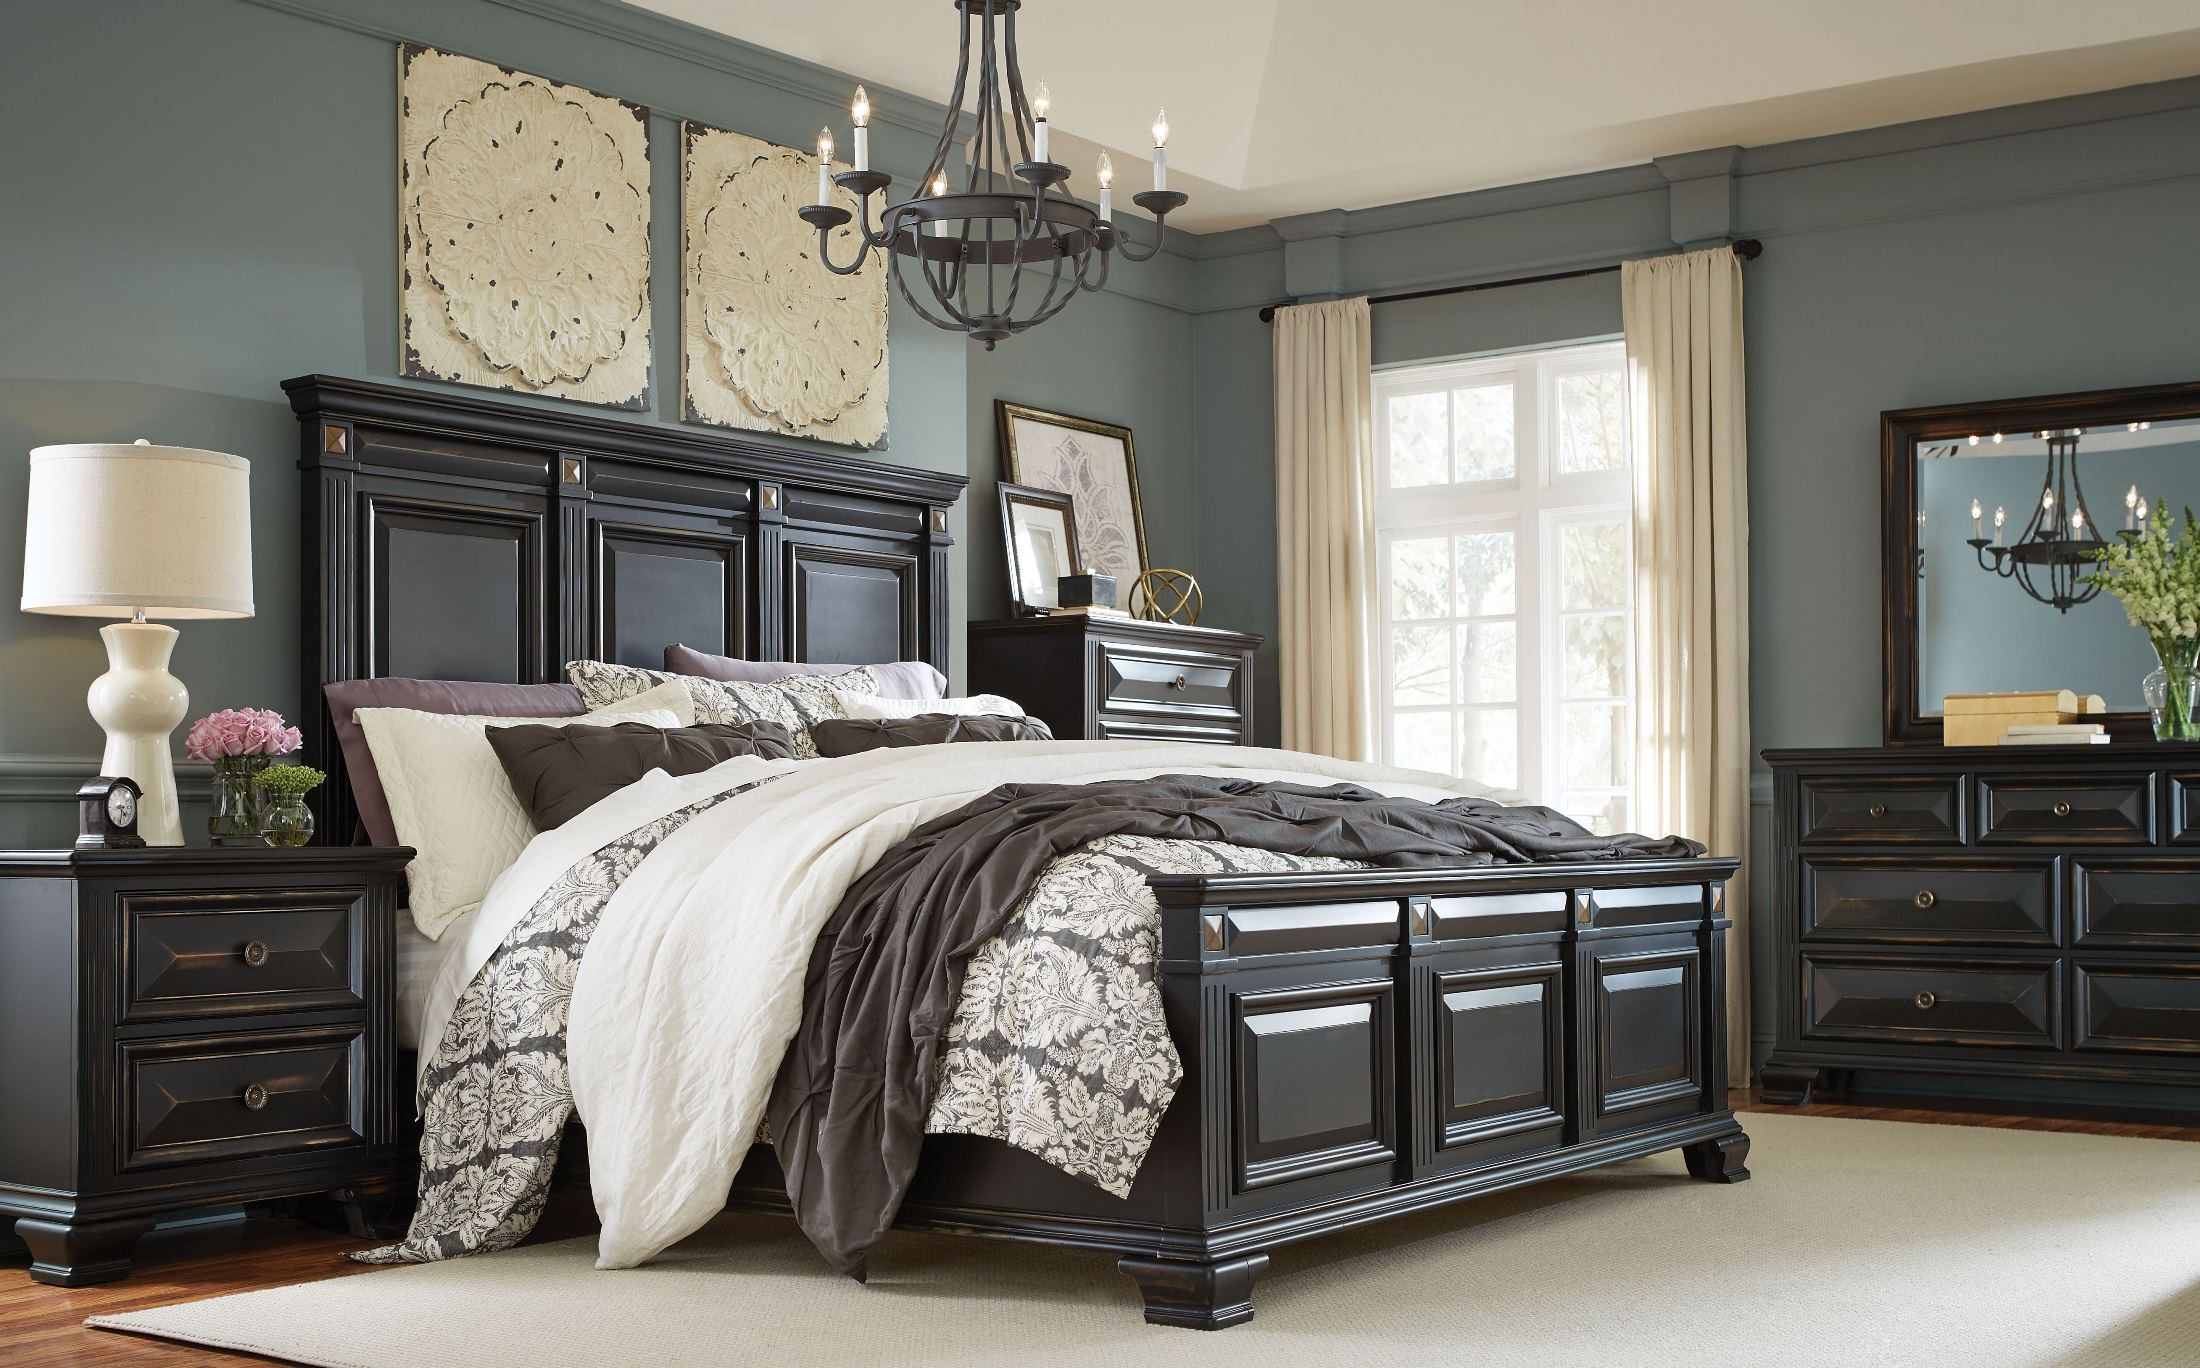 passages vintage black panel bedroom set from standard furniture coleman furniture. Black Bedroom Furniture Sets. Home Design Ideas